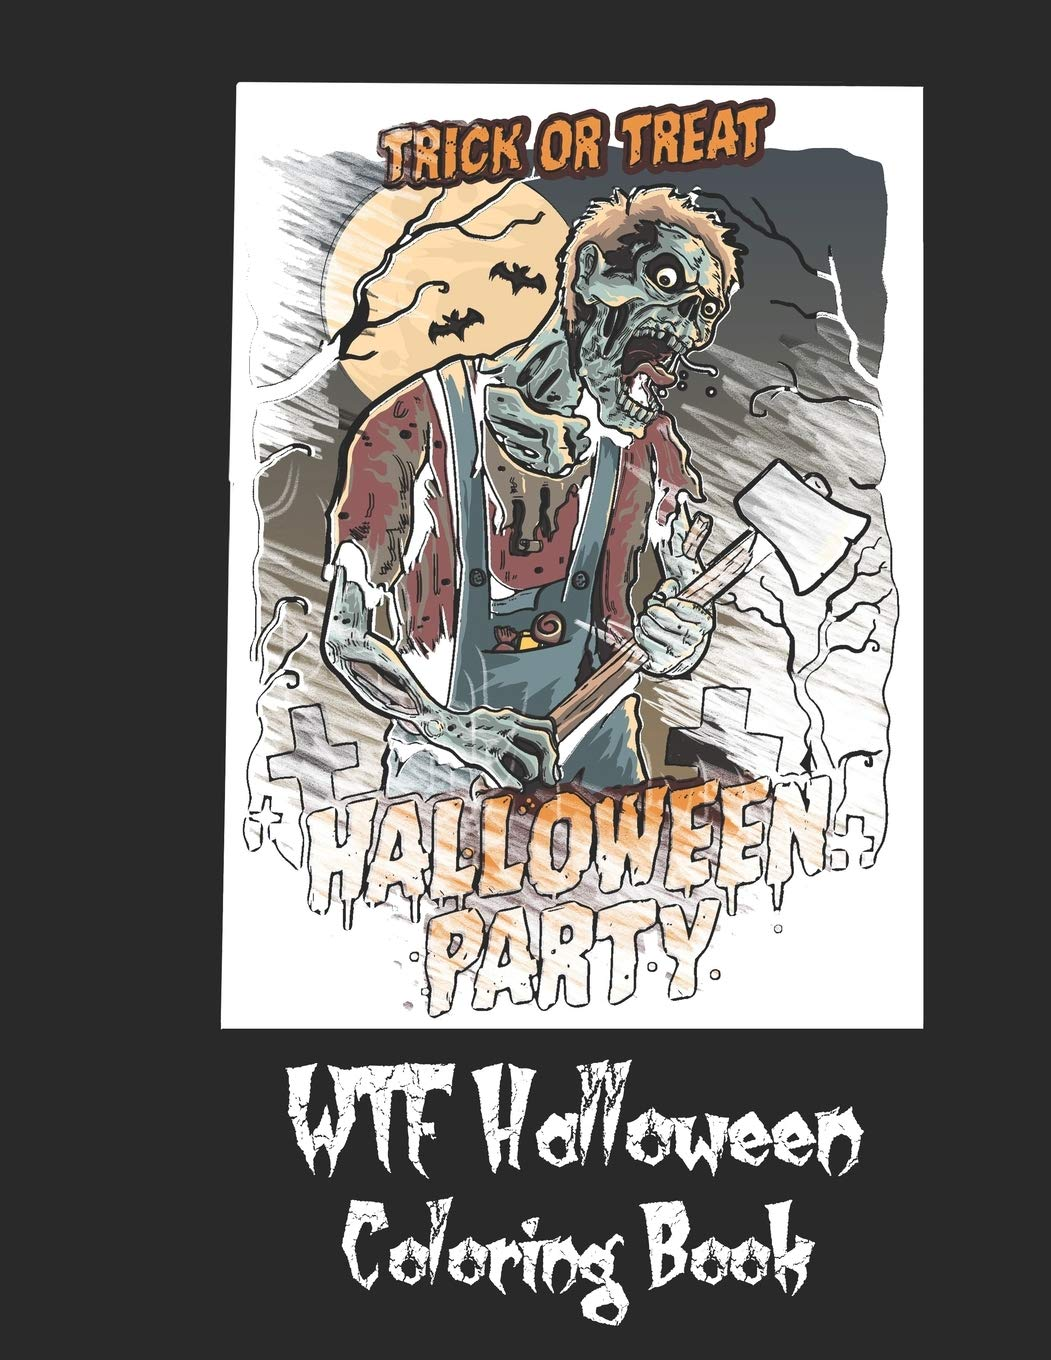 Amazon Com Wtf Halloween Coloring Book 50 Unique Coloring Pages With Creepy Scary Creatures For Adults Teen Tweens And Brave Kids I Dare You 9781692611965 Halloween Saf S Design Books